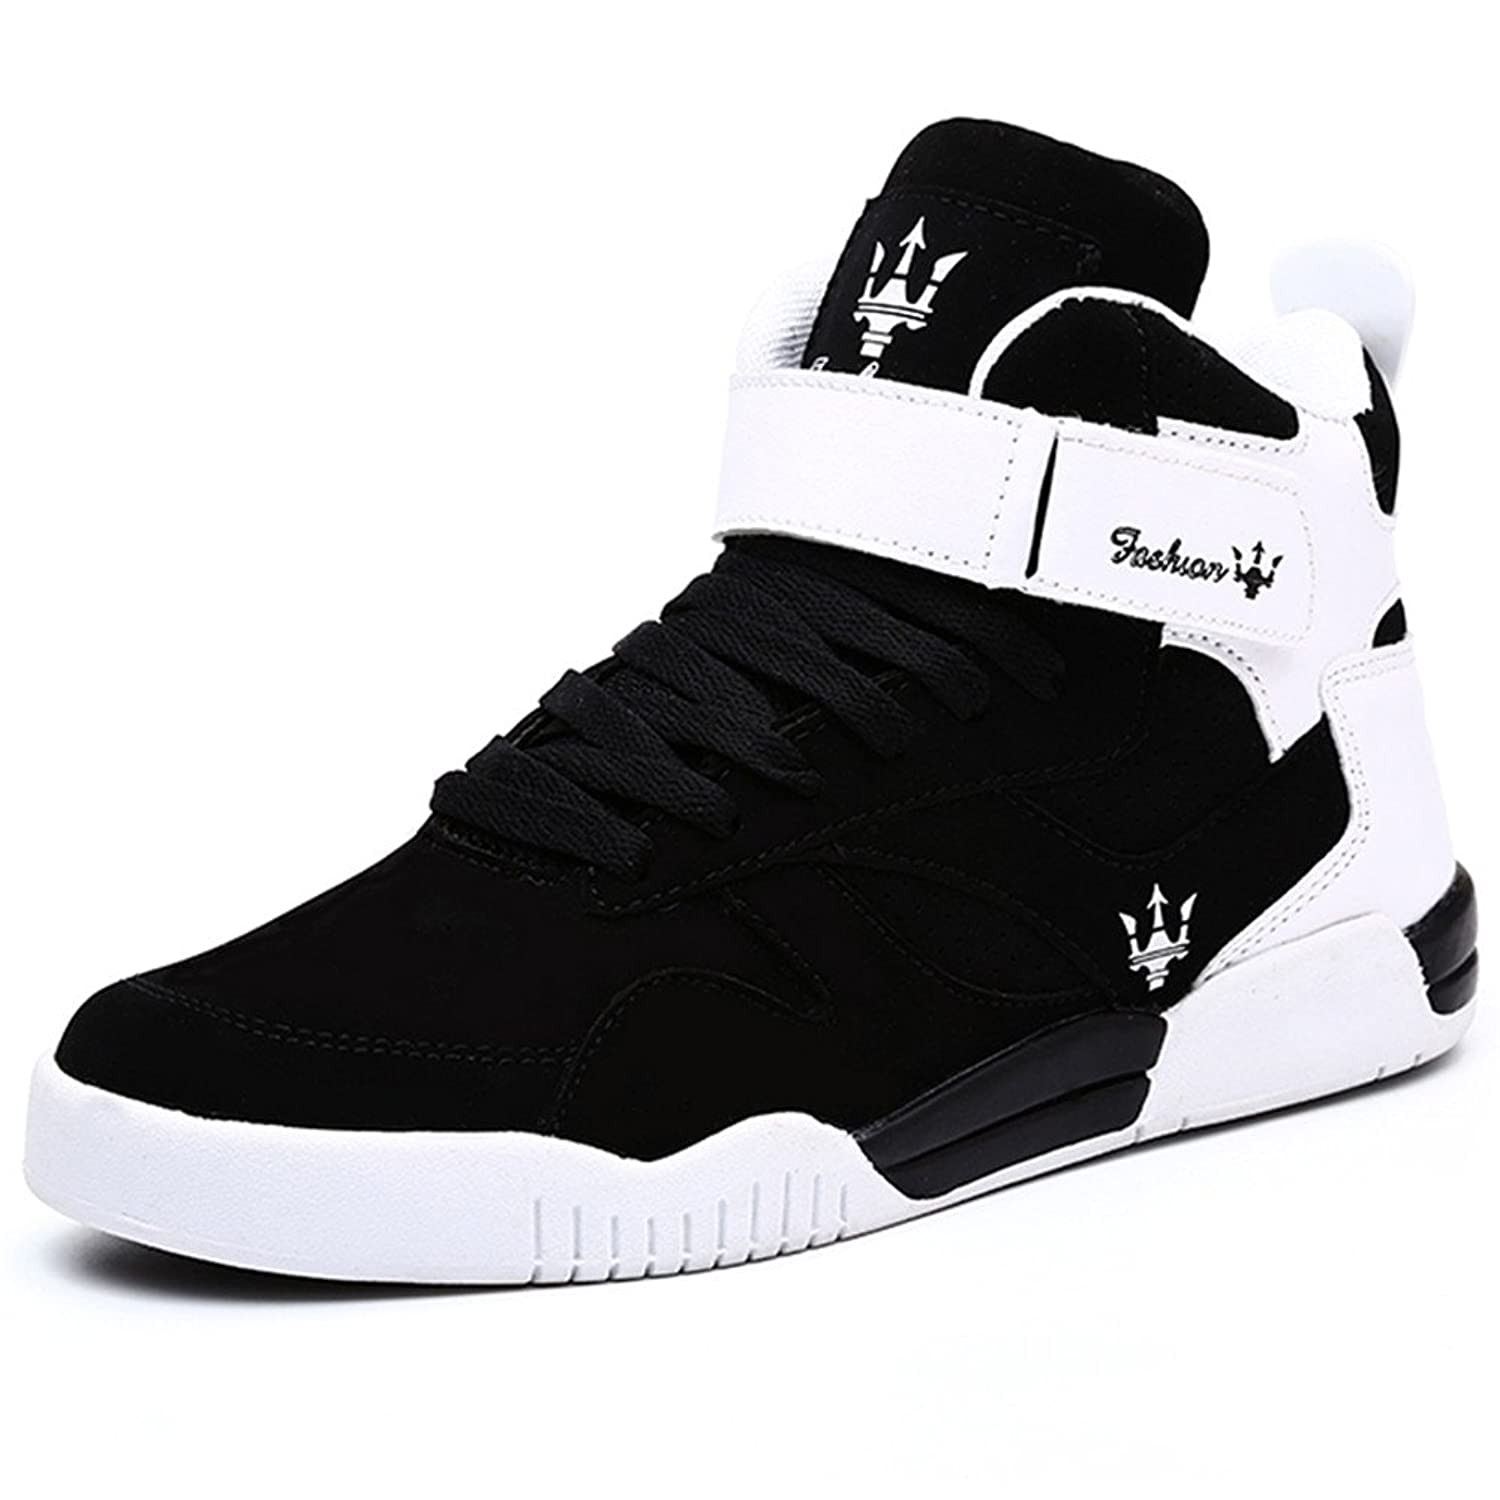 Adidas Neo Dance Shoes